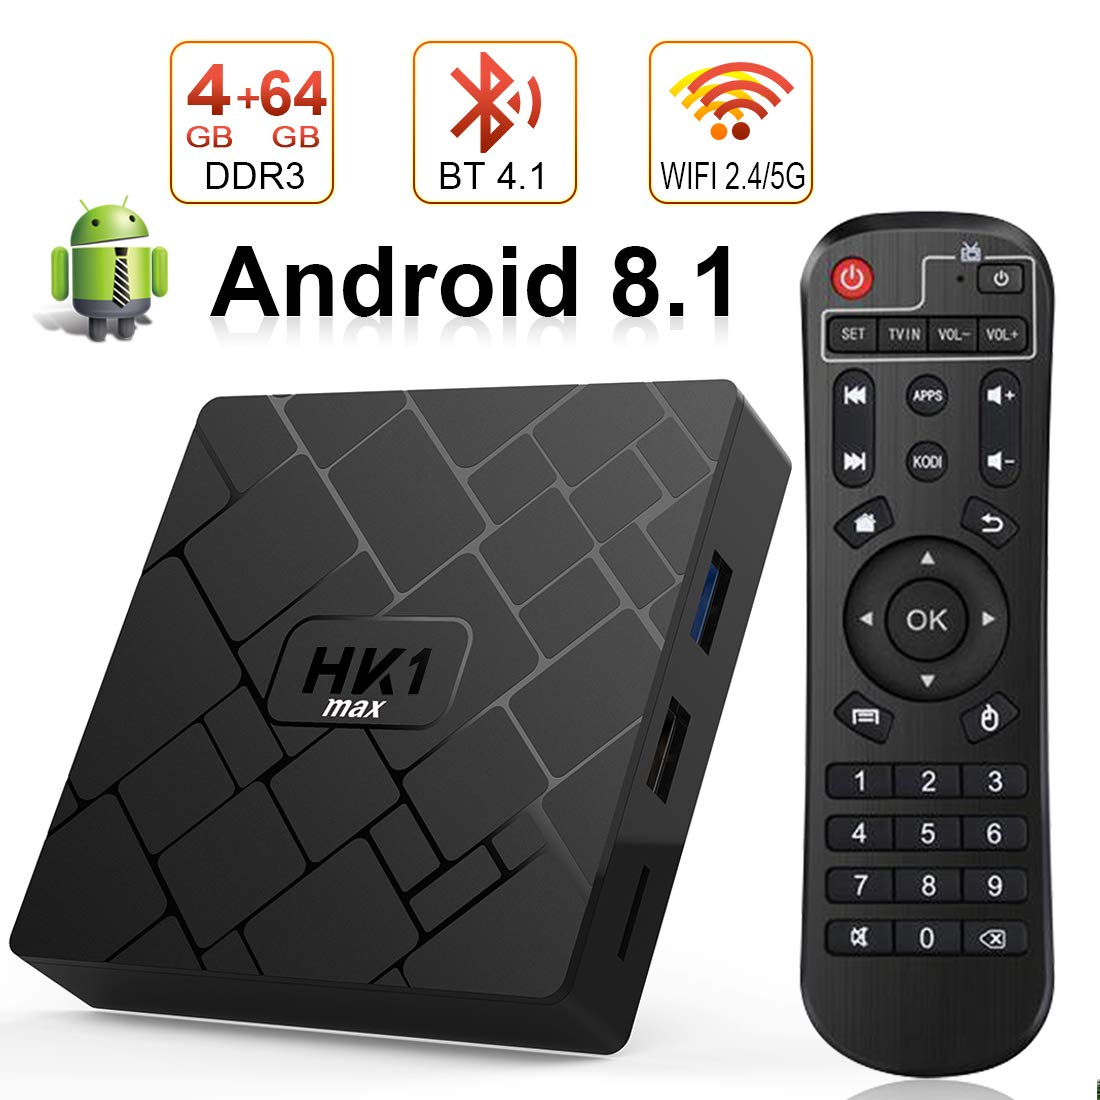 Android 8.1 TV Box with 4GB RAM 64GB ROM, Livebox HK1 max RK3328 Quad Core 64 bit Built in BT 4.1 Dual-WiFi 2.4GHz/5GHz,Supporting 4K (60Hz) Full HD/3D/H.265,USB 3.0[2019 Version]